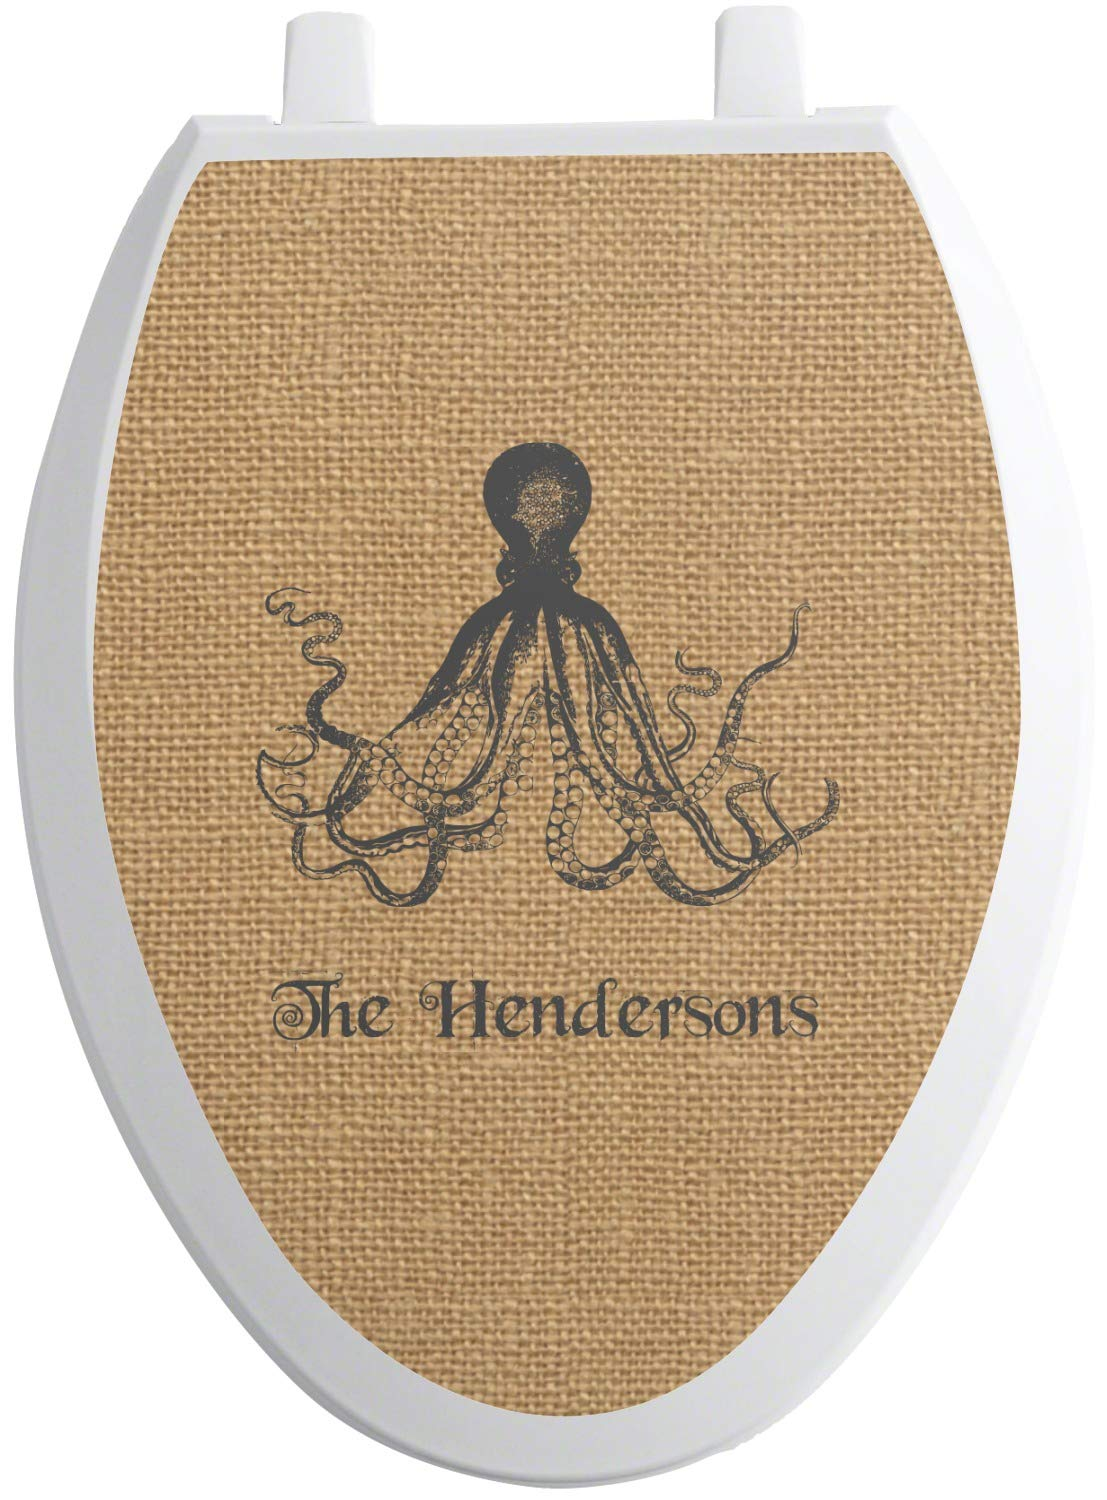 RNK Shops Octopus & Burlap Print Toilet Seat Decal - Elongated (Personalized) by RNK Shops